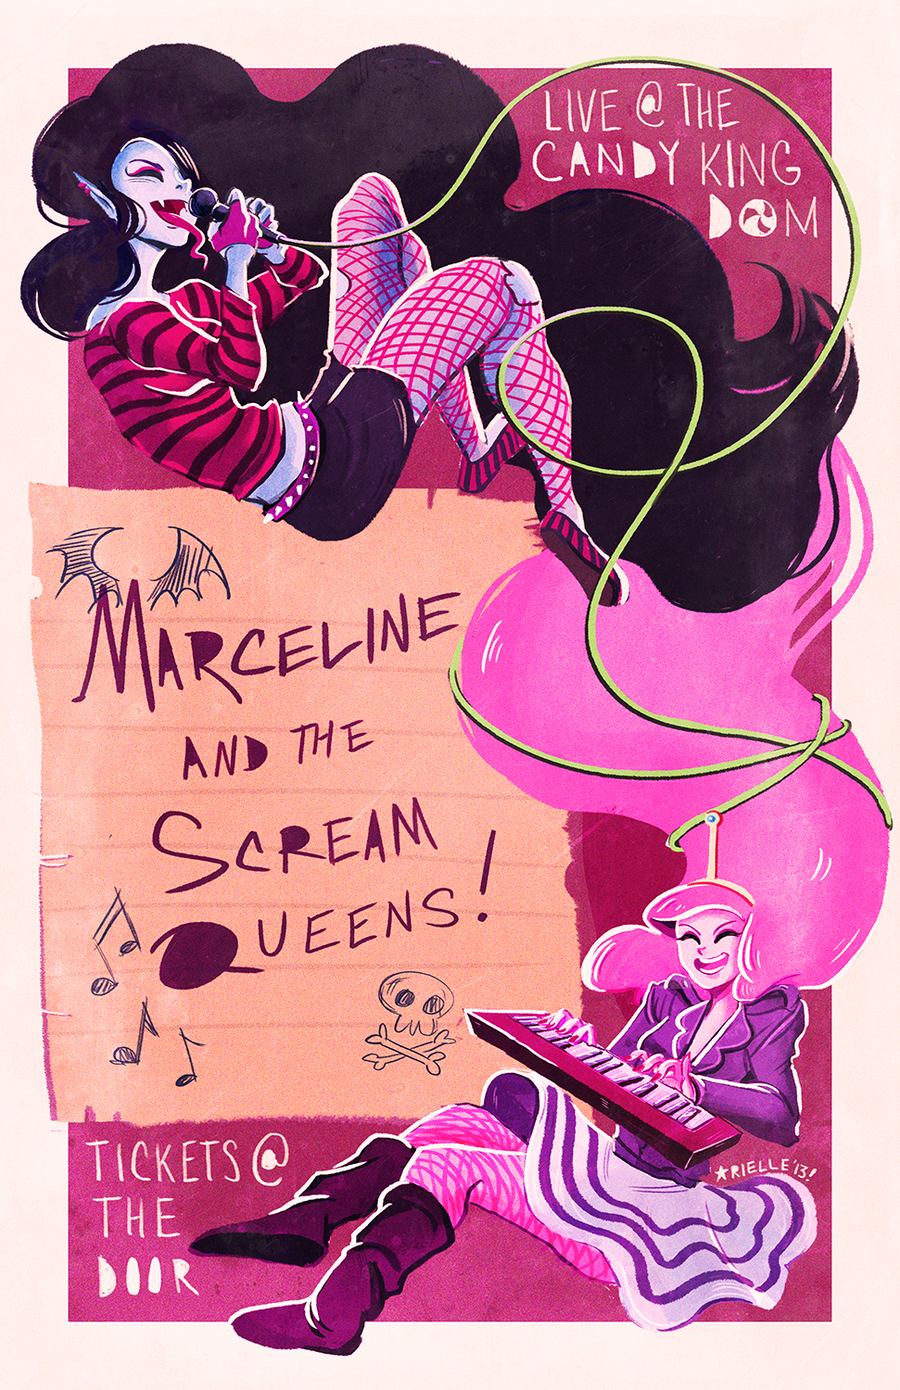 Image of Marceline and the Scream Queens Print